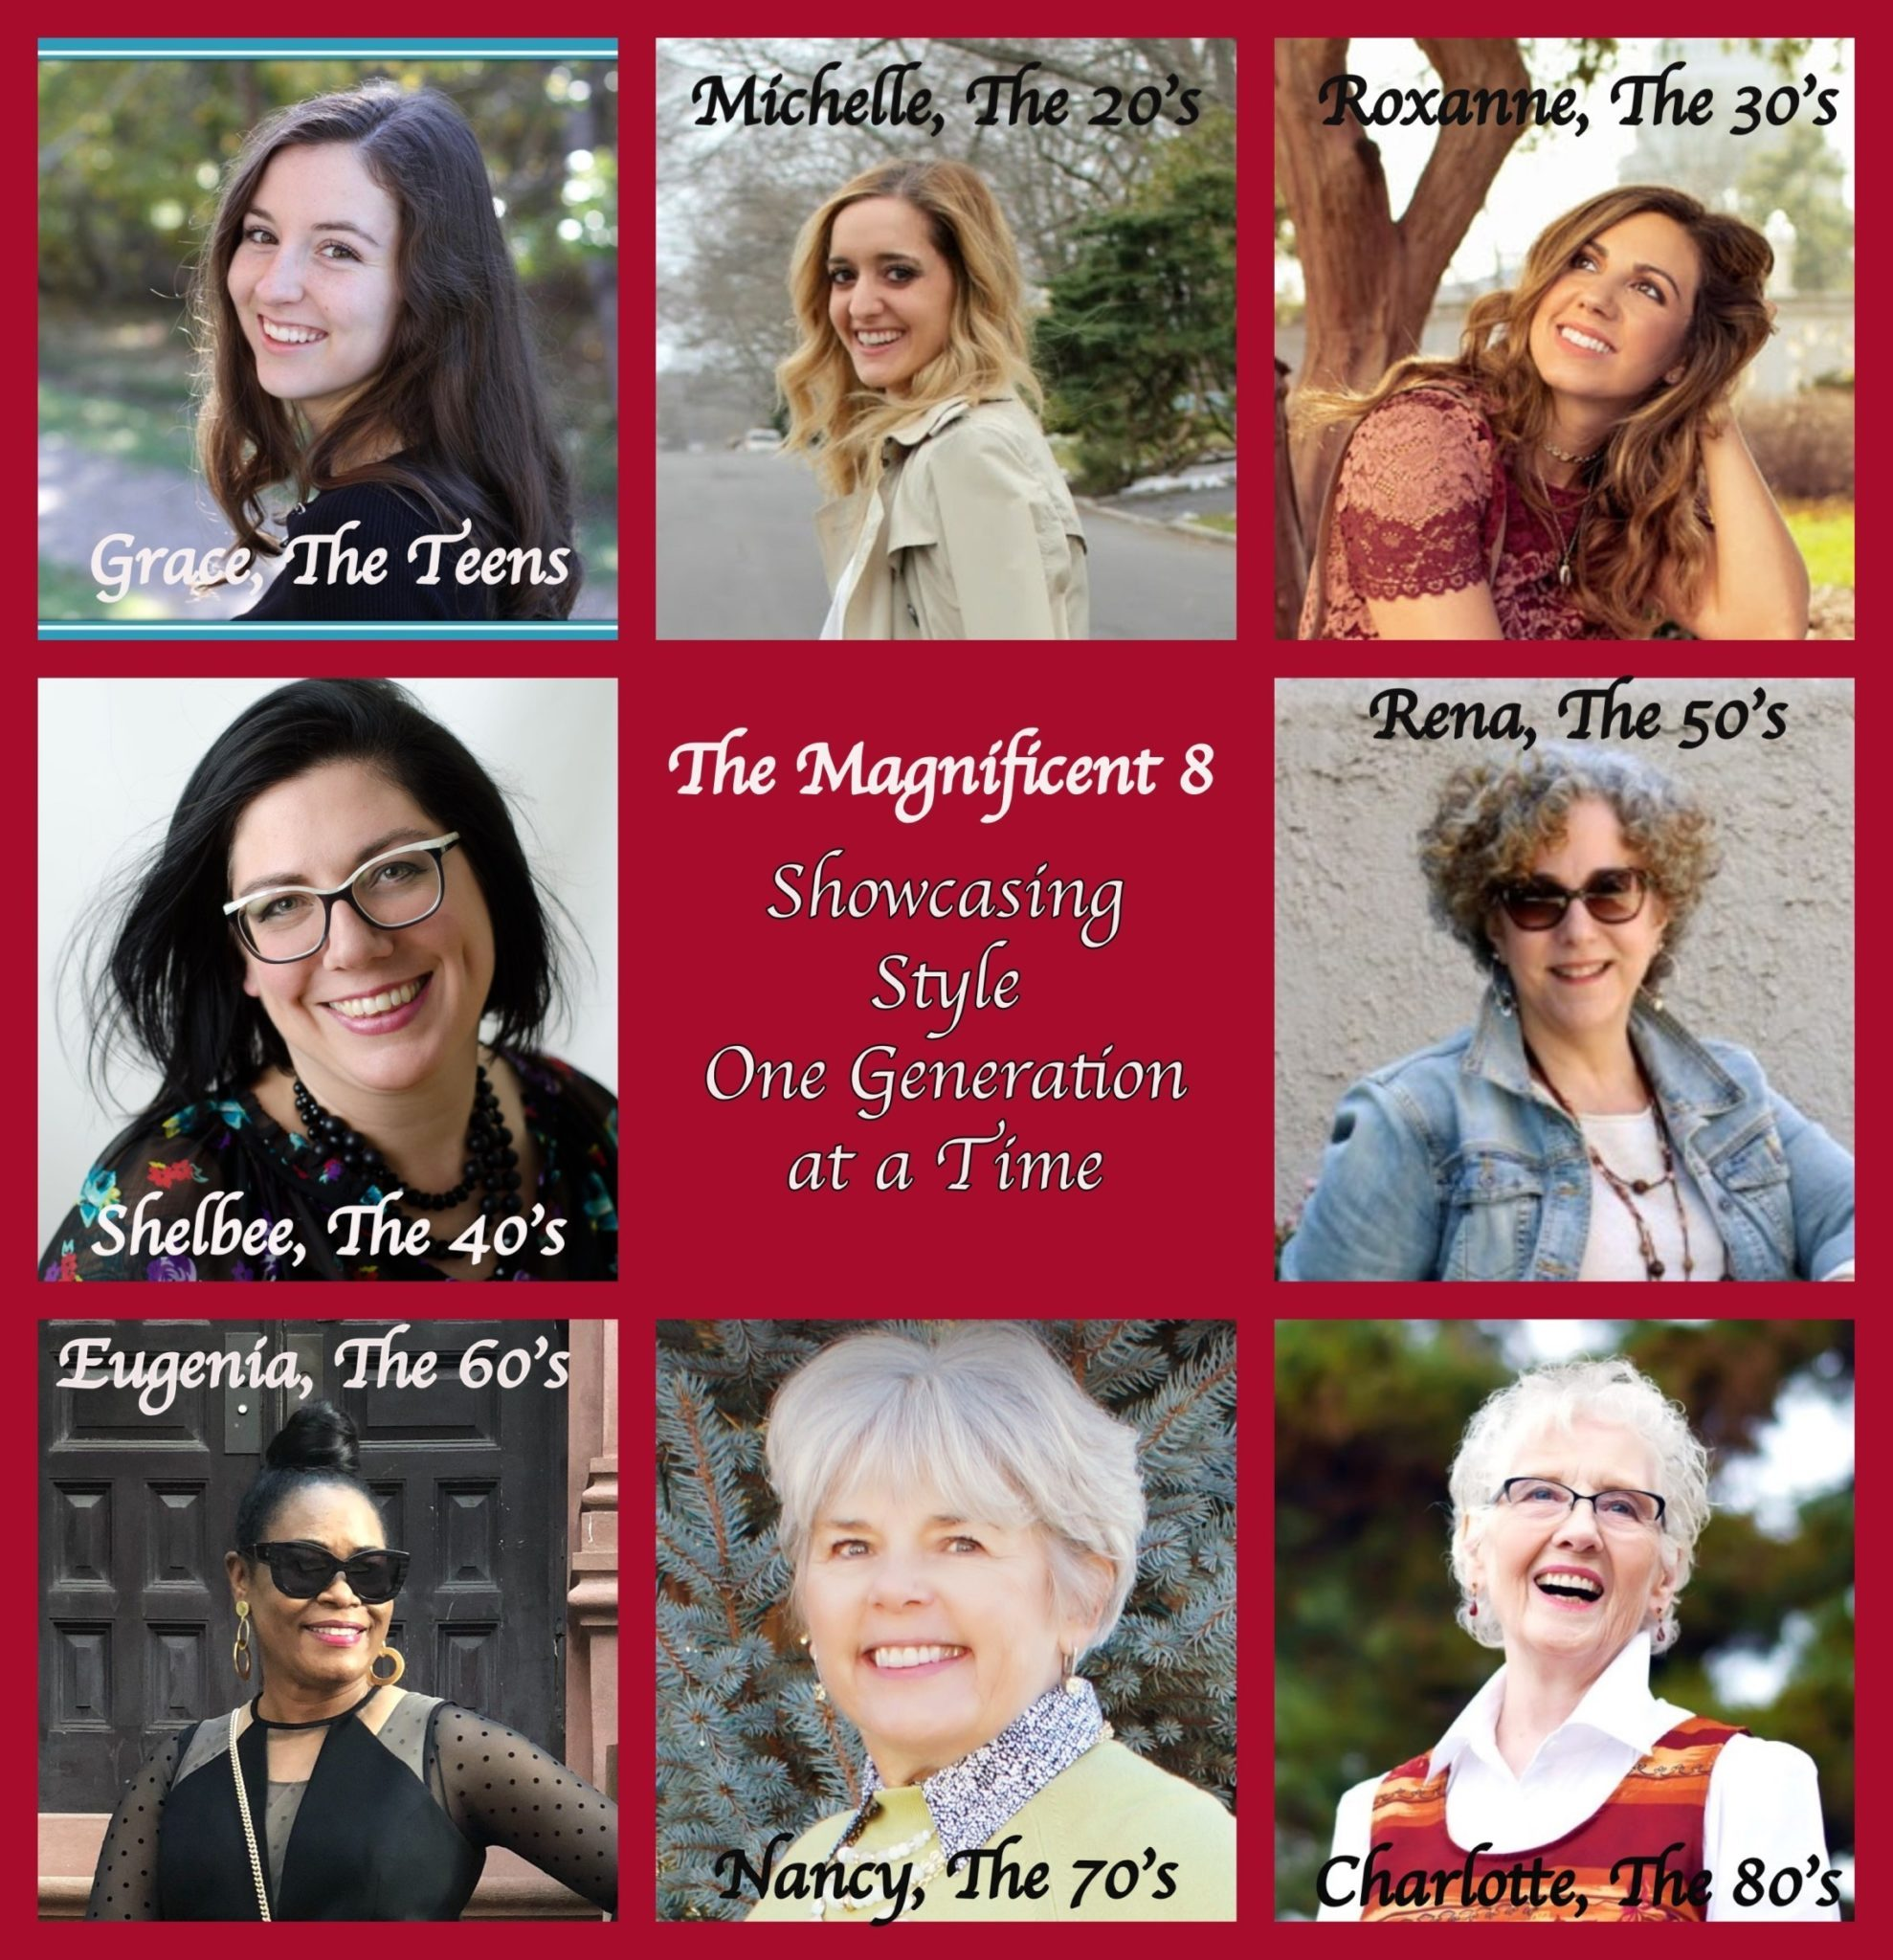 Little White Summer Dress & The Return of The Magnificent 8 by popular fashion blog, Glass of Glam: collage image of 8 women.